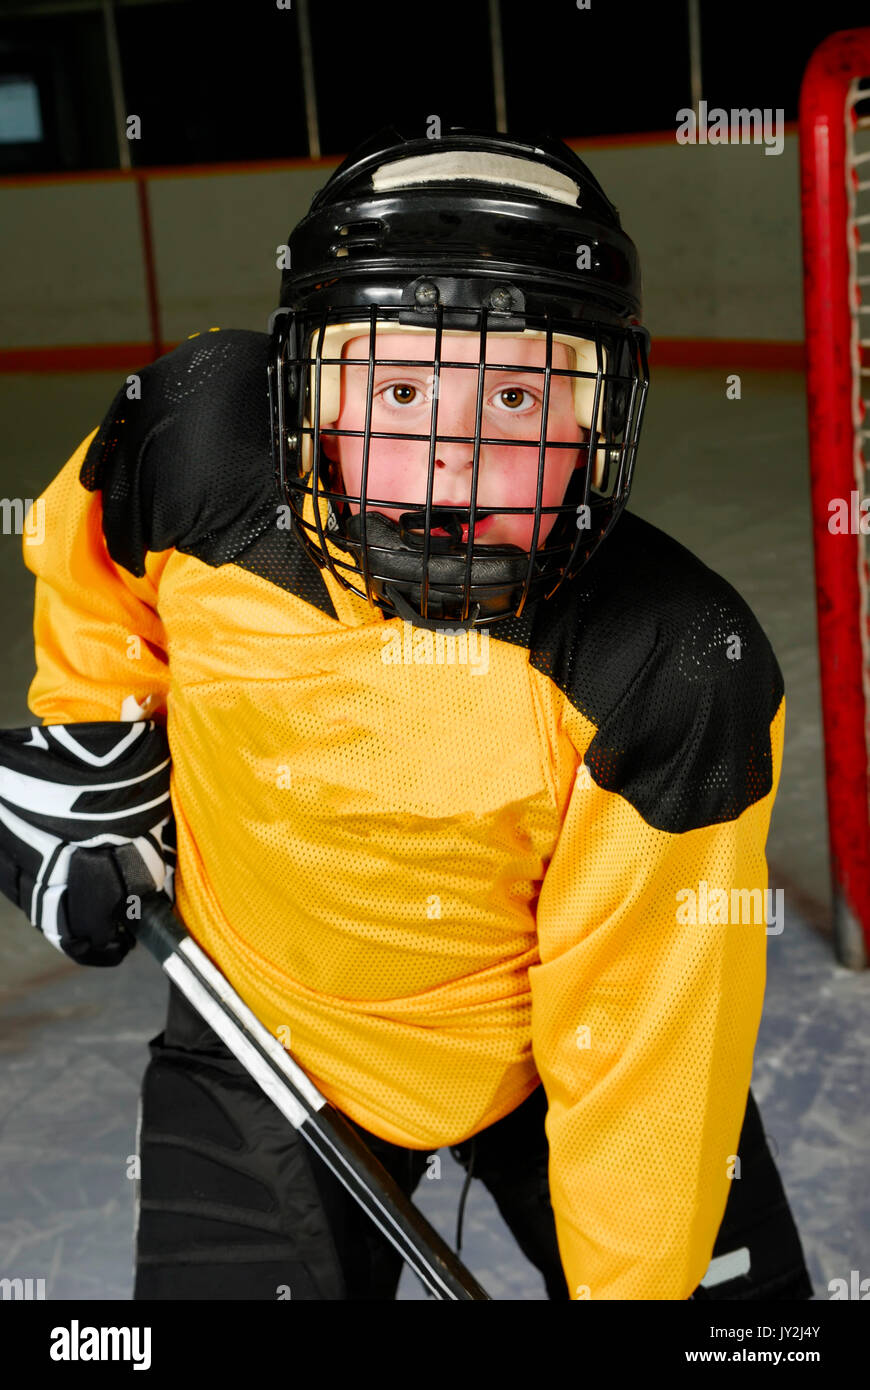 Closeup of a peewee hockey player in his mask. - Stock Image